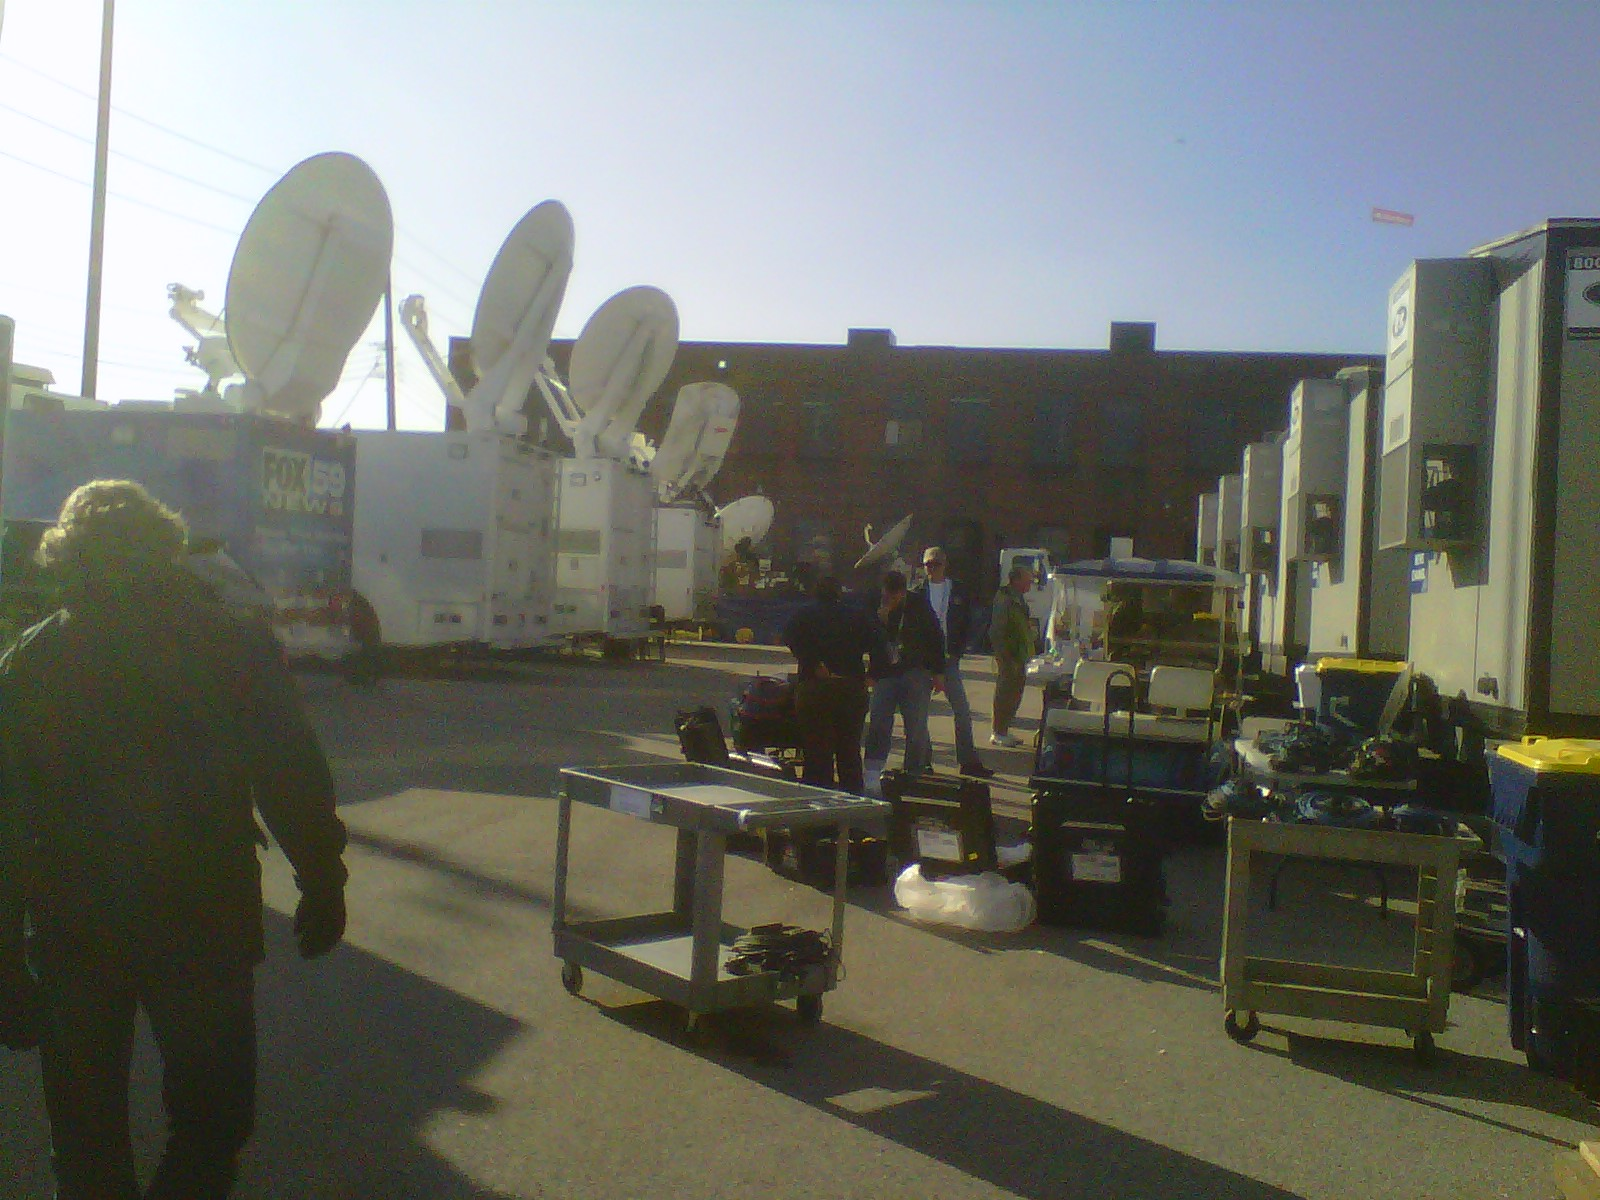 Working the Super Bowl in Broadcasting-img00519-20120205-1518.jpg